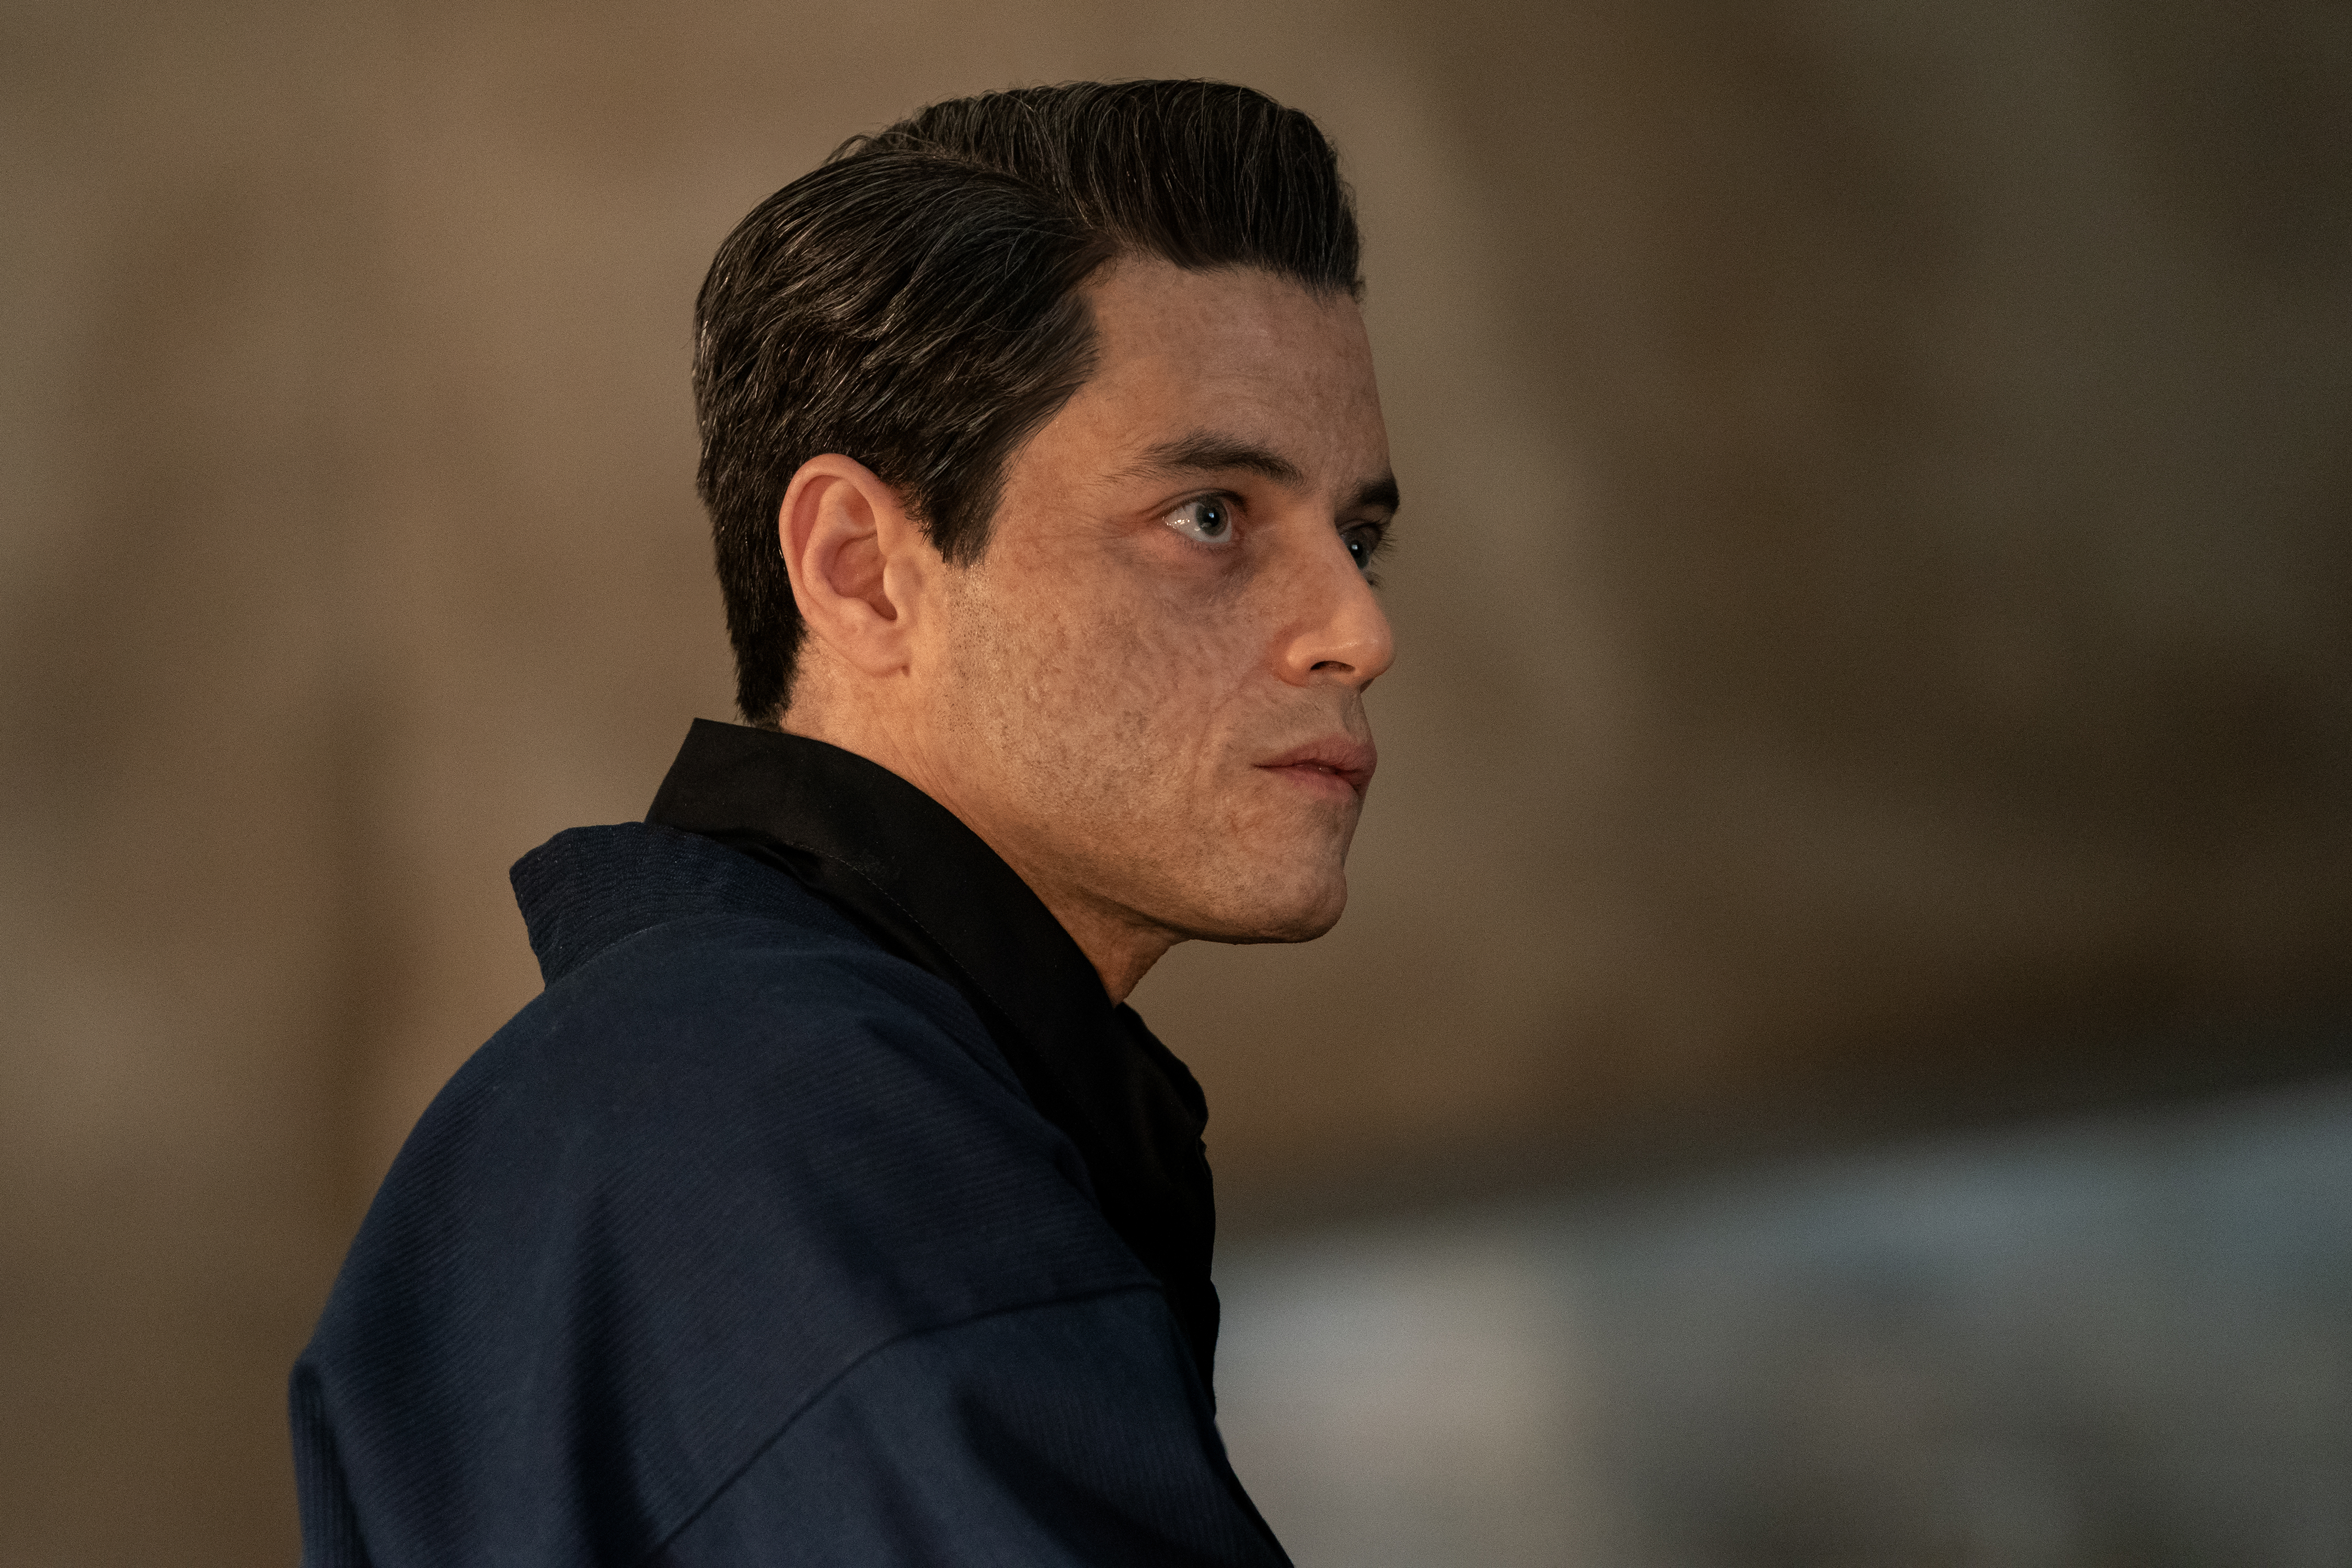 Rami Malek as Safin in No Time to Die